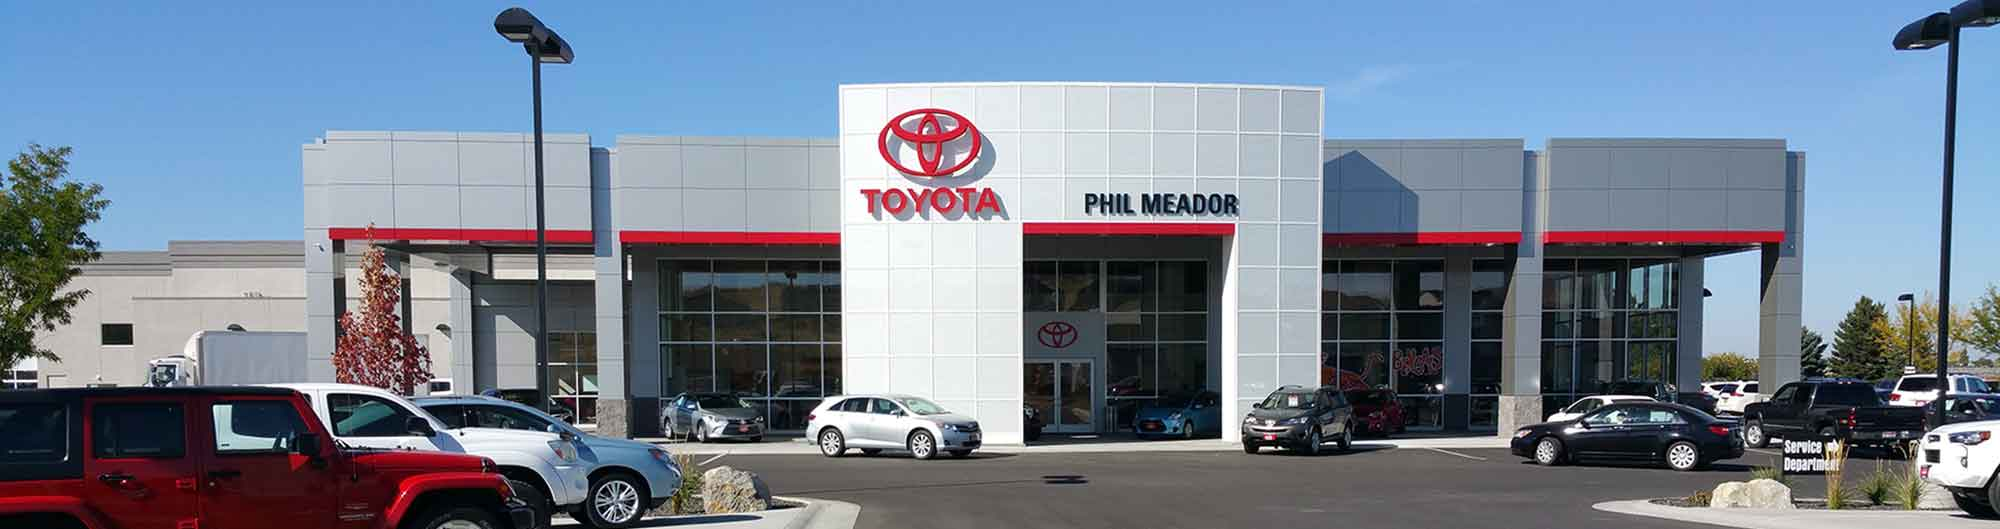 Phil meador subaru phil meador toyota courtesy ford